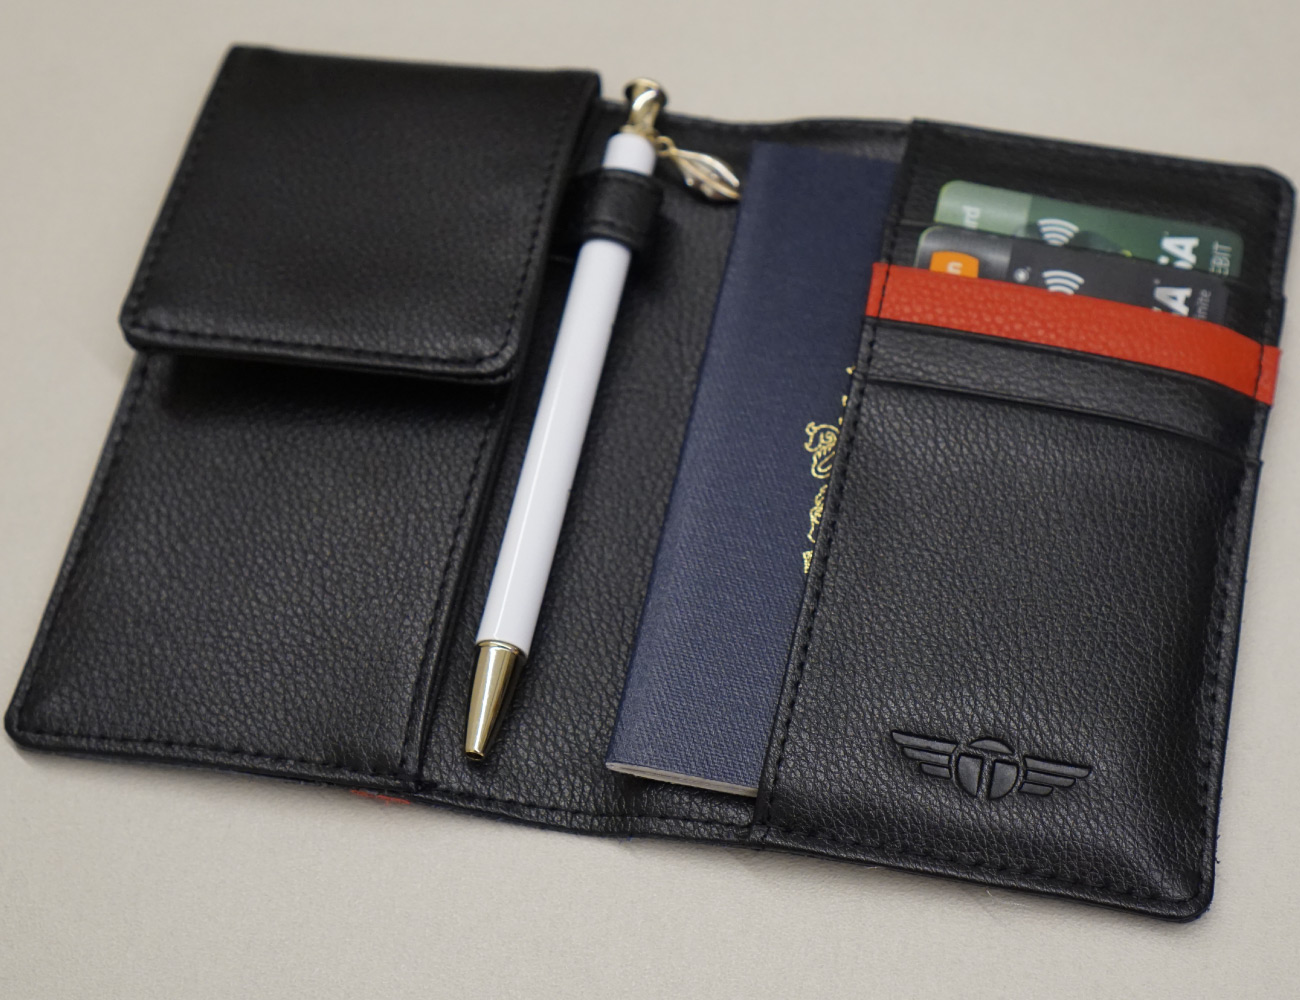 Talonport 8-Feature Passport Wallet